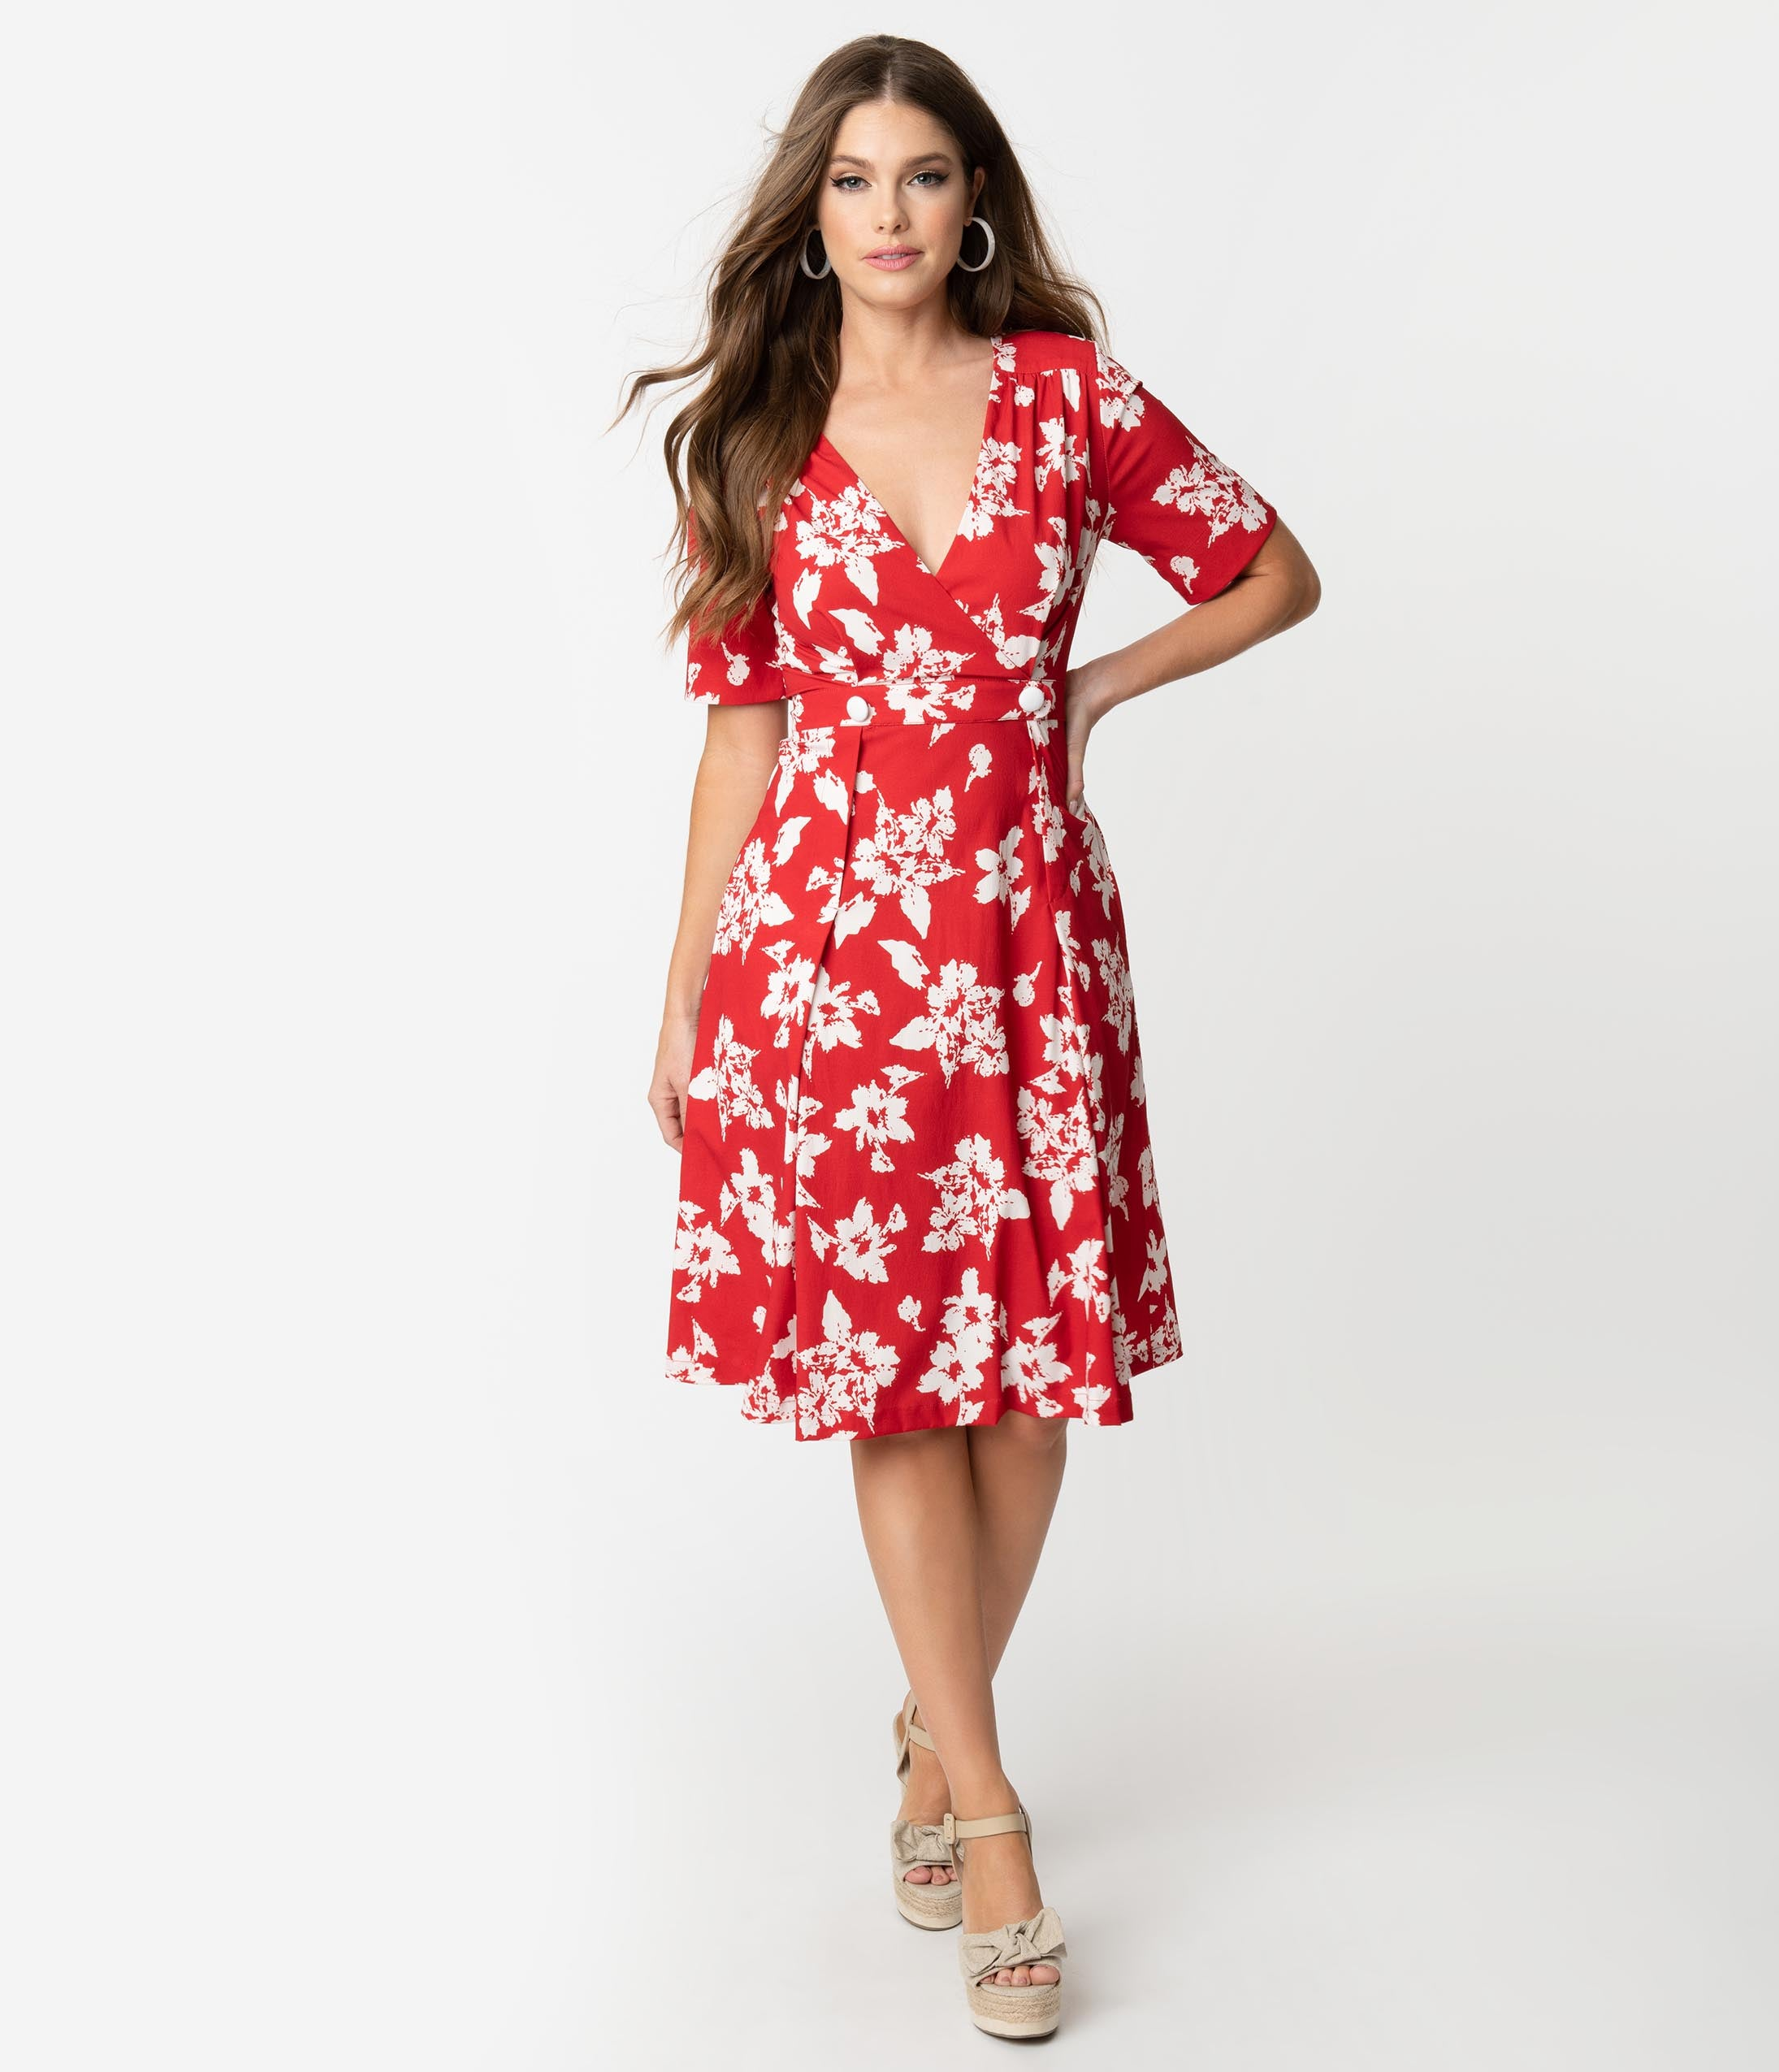 d2d0ae74e96 Retro Style Plus Size Red & White Floral Print Molly Swing Dress ...